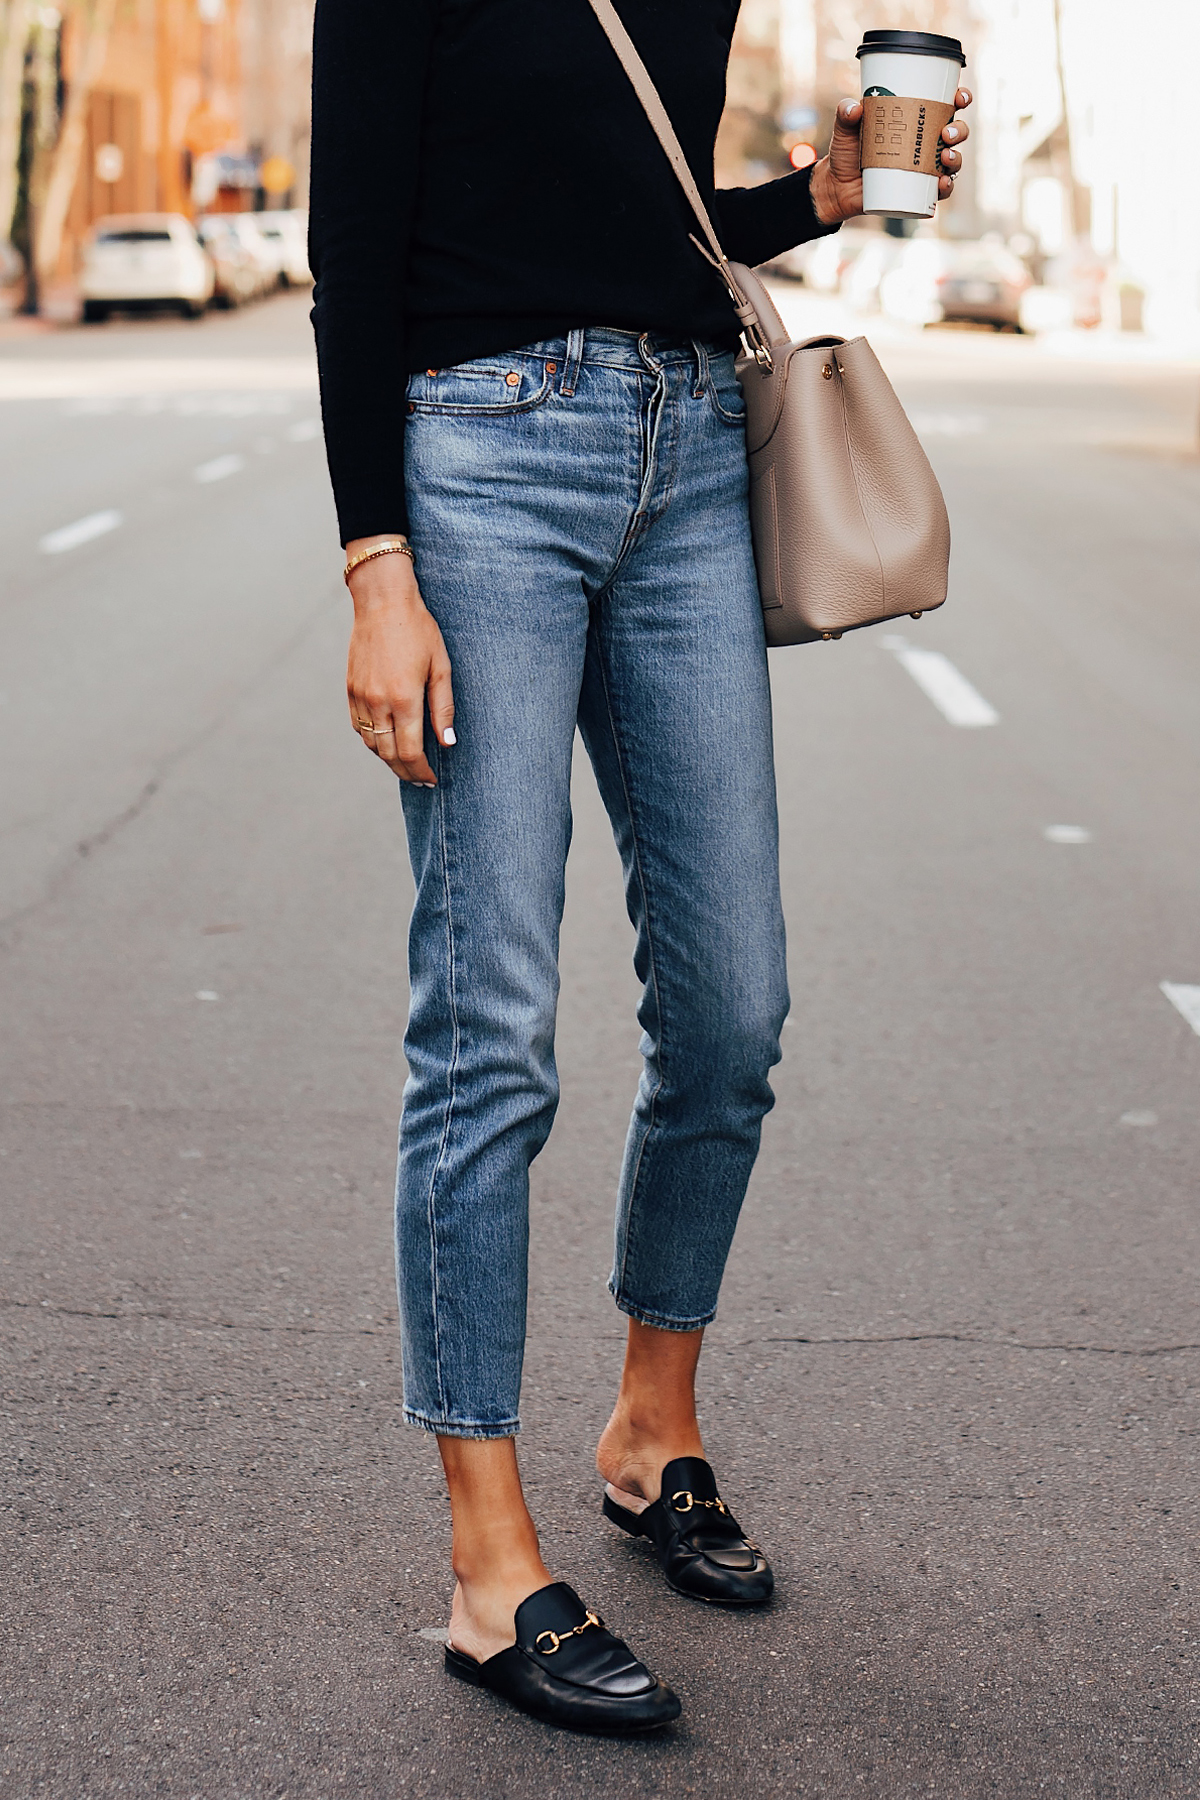 Woman Wearing Black Sweater Levis 501 Ankle Jeans Gucci Princetown Mules Black Fashion Jackson San Diego Fashion Blogger Street Style